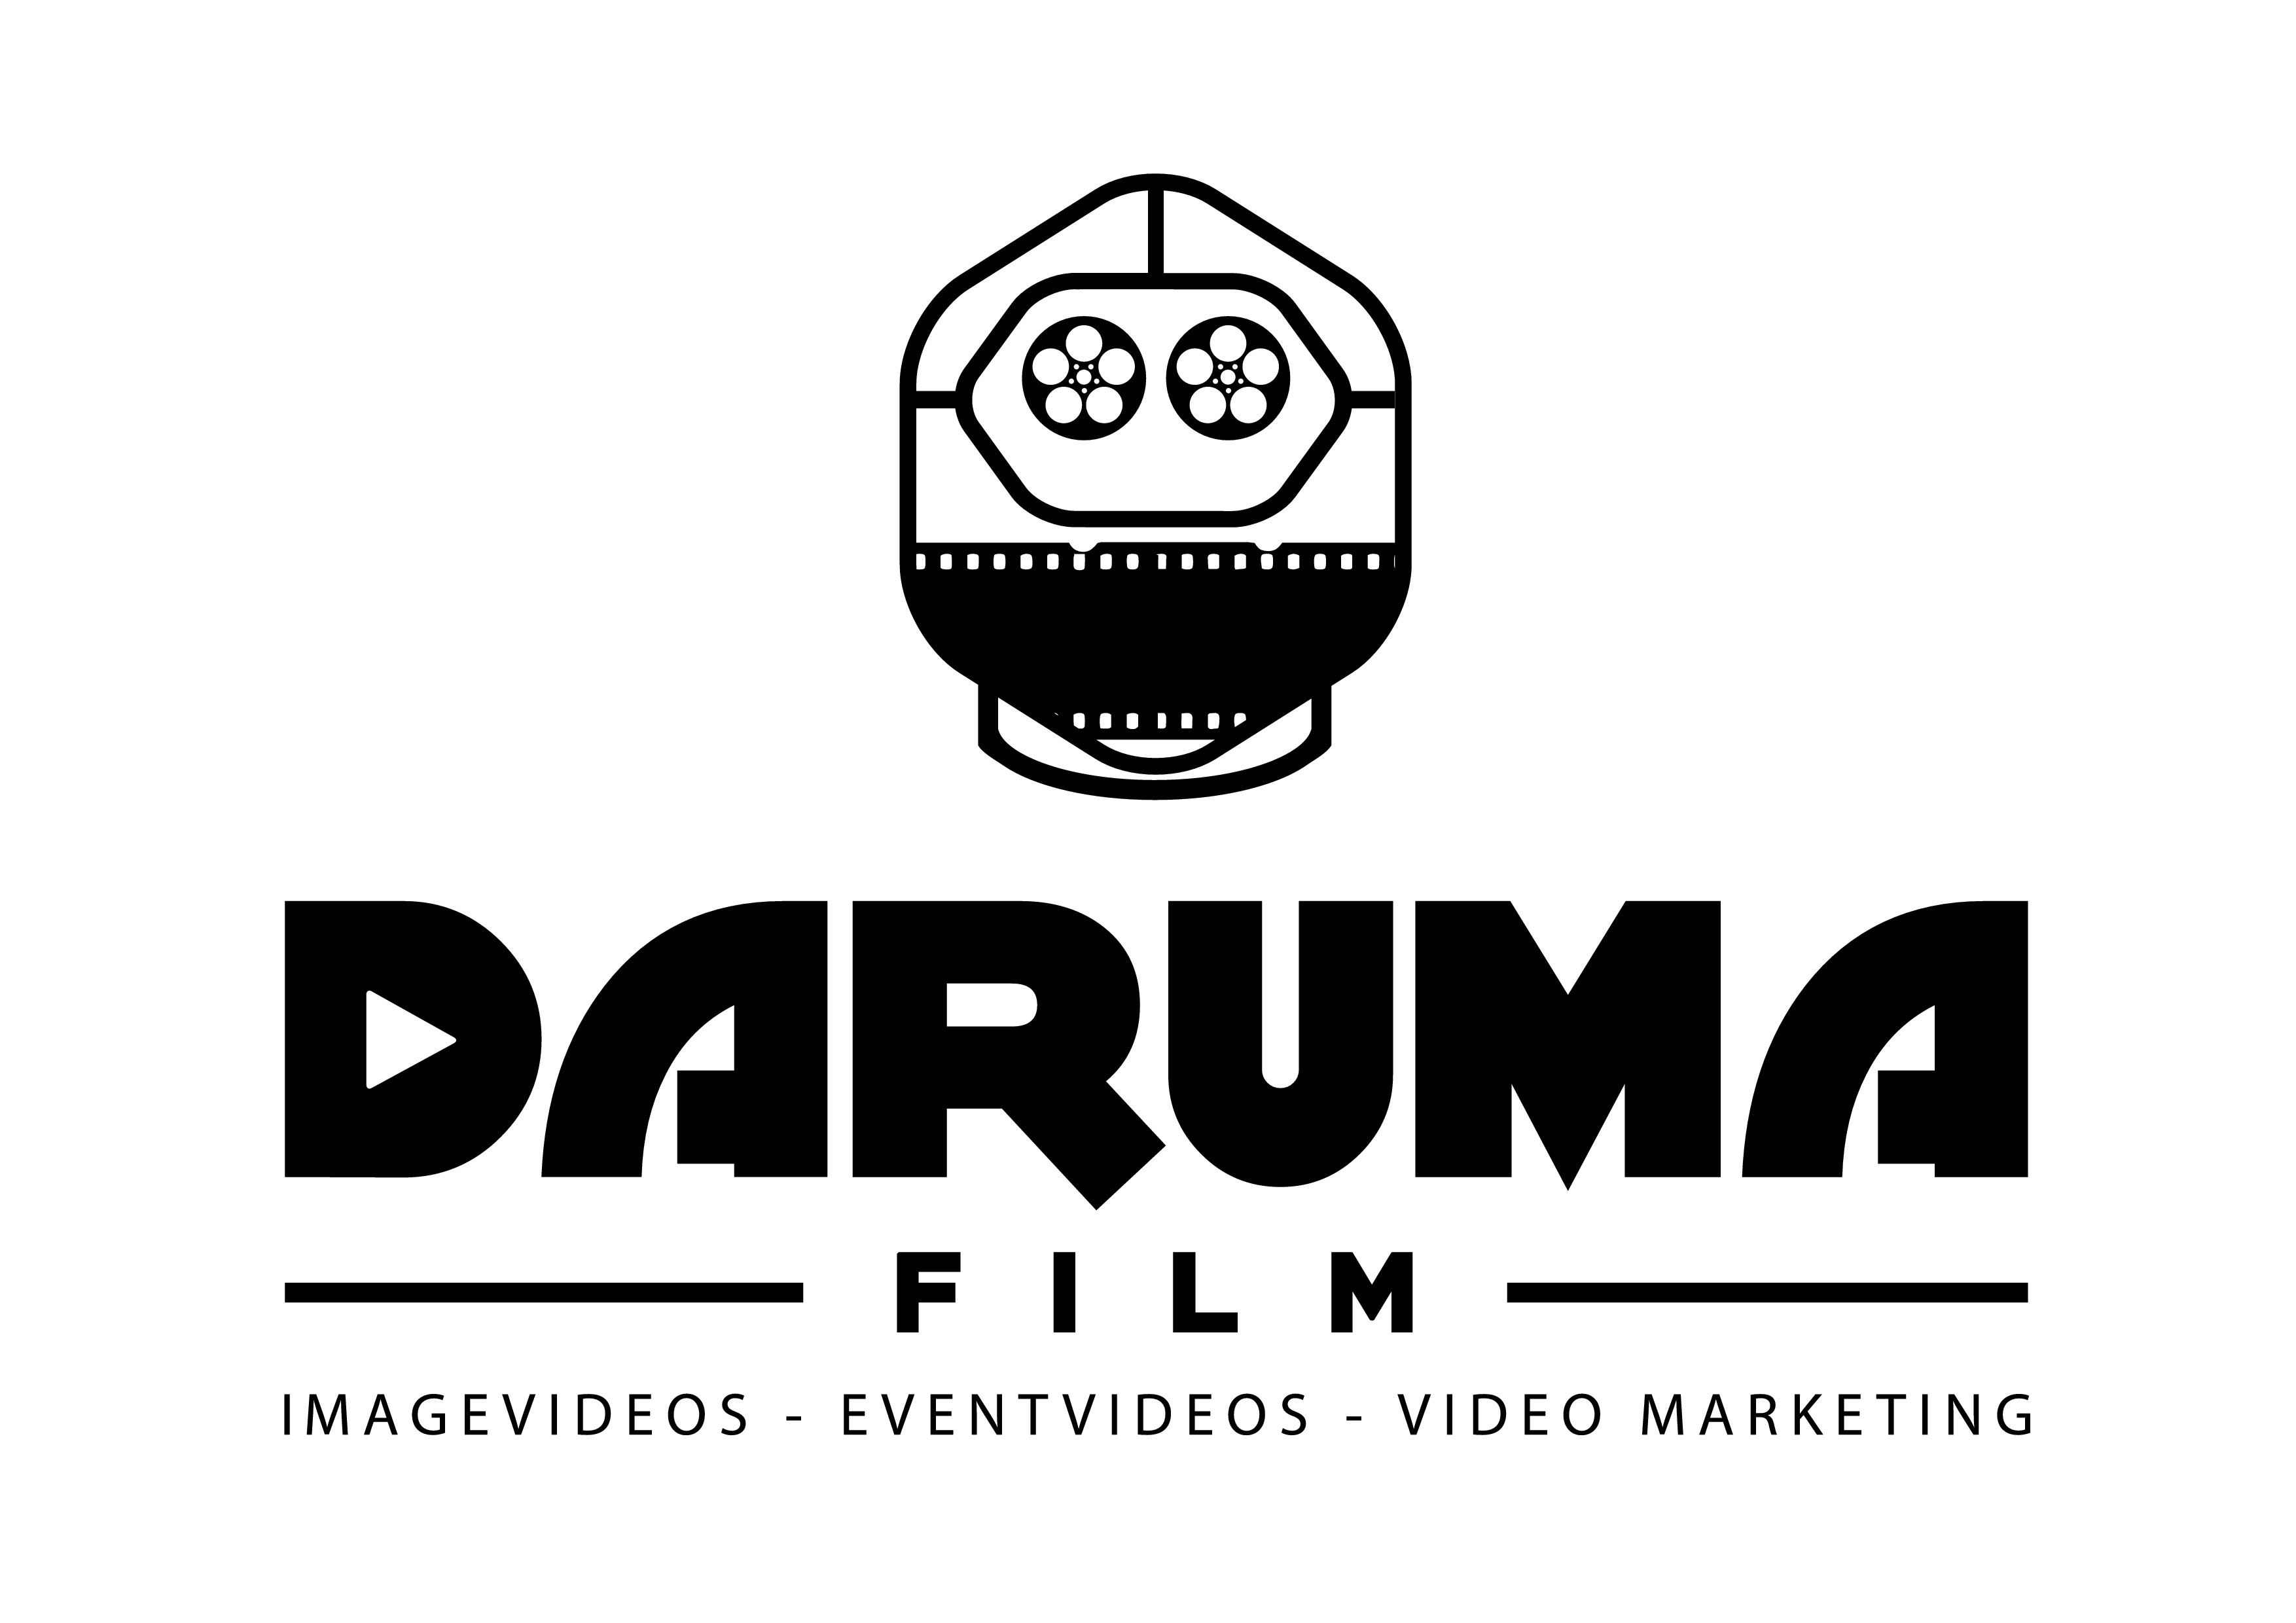 Create a great logo for a filmproduction company